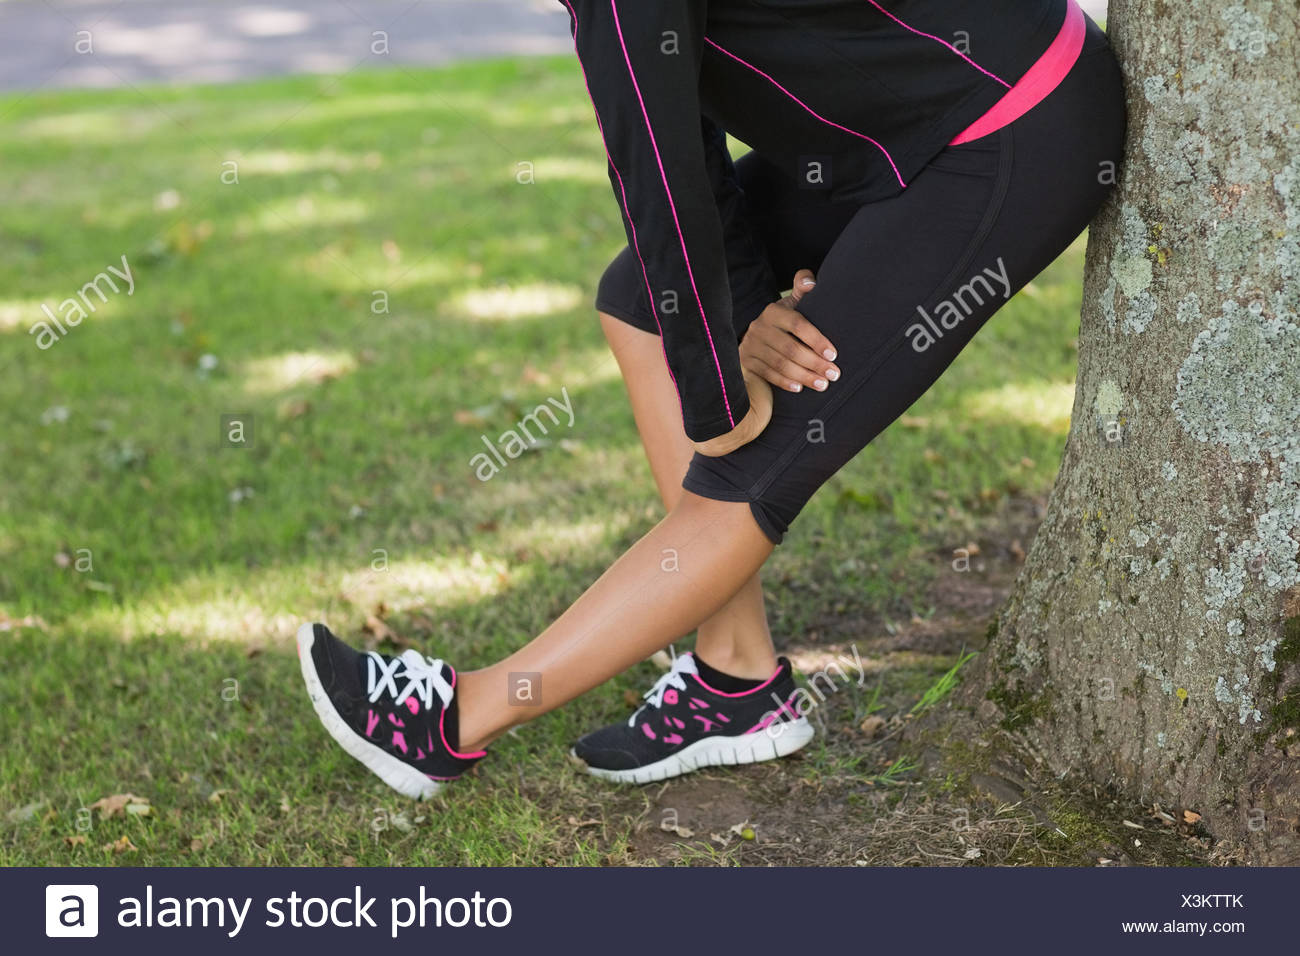 Low section of woman stretching her leg during exercise at park Stock Photo